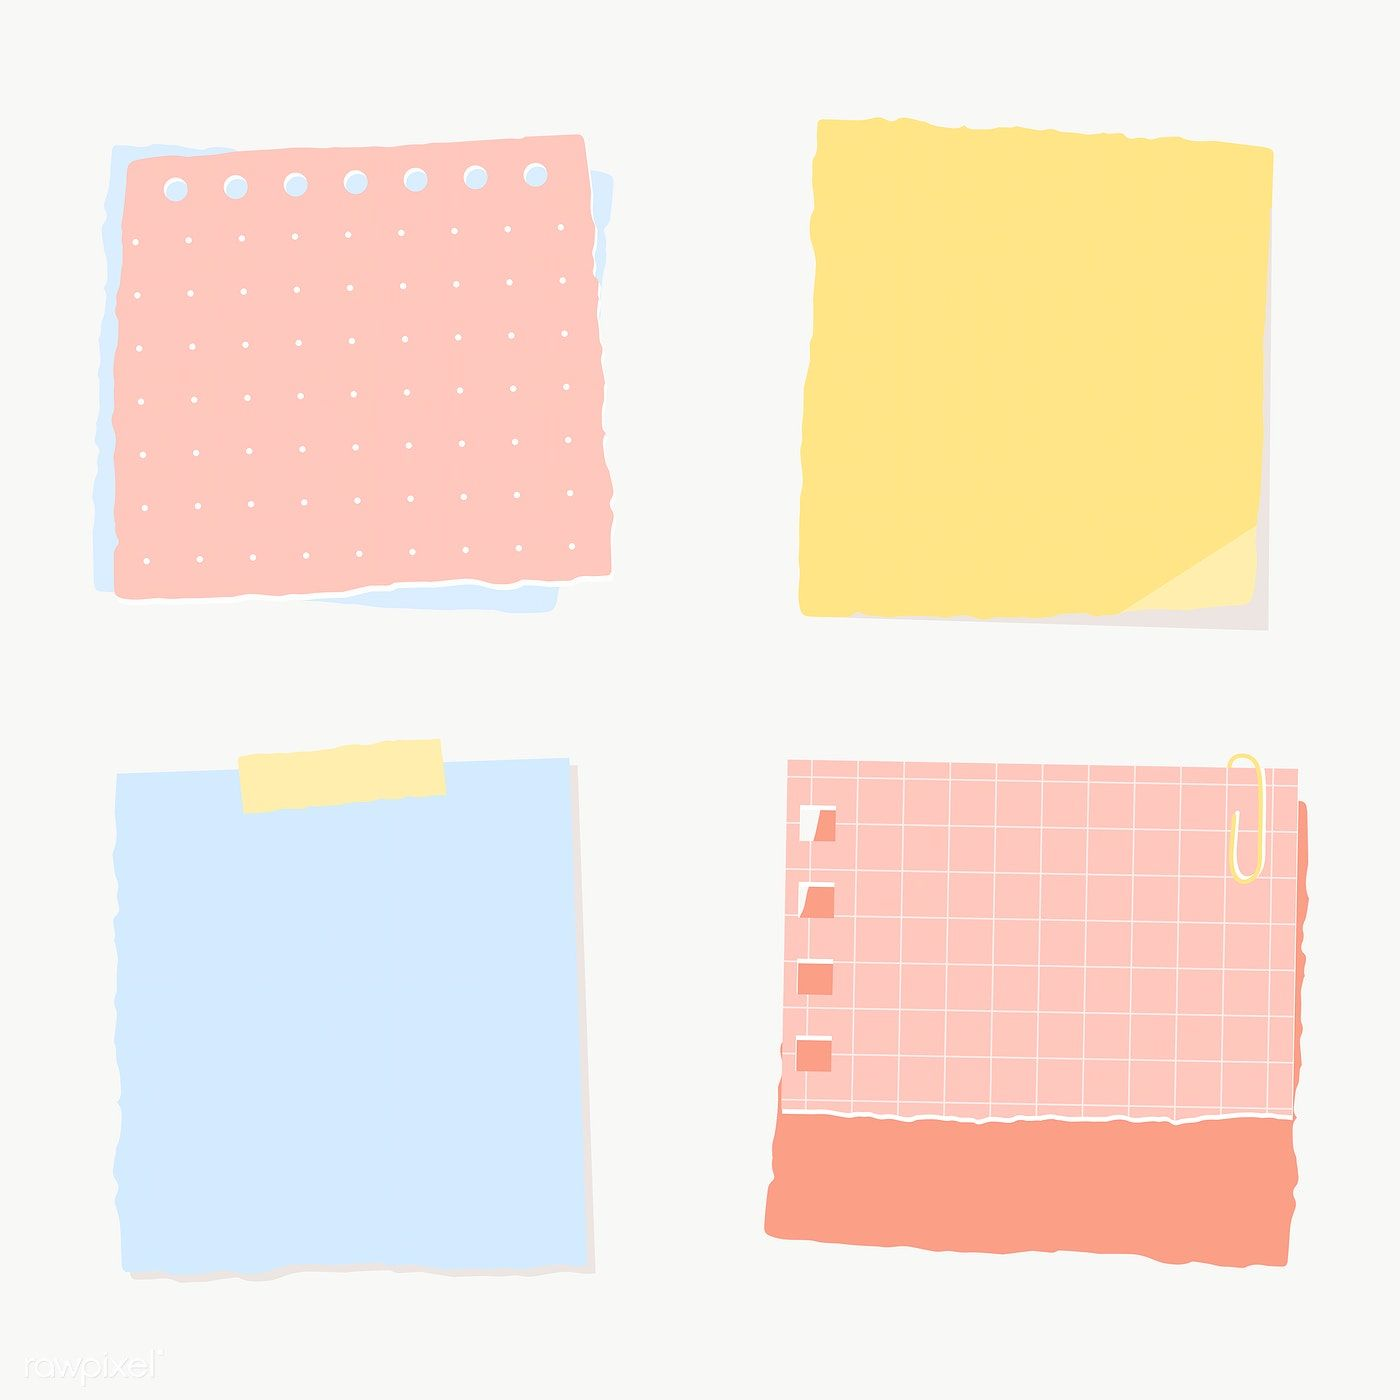 Colorful Paper Note Collection Social Ads Template Transparent Png Free Image By Rawpixel Com Manotang Note Paper Torn Paper Sticky Notes Collection